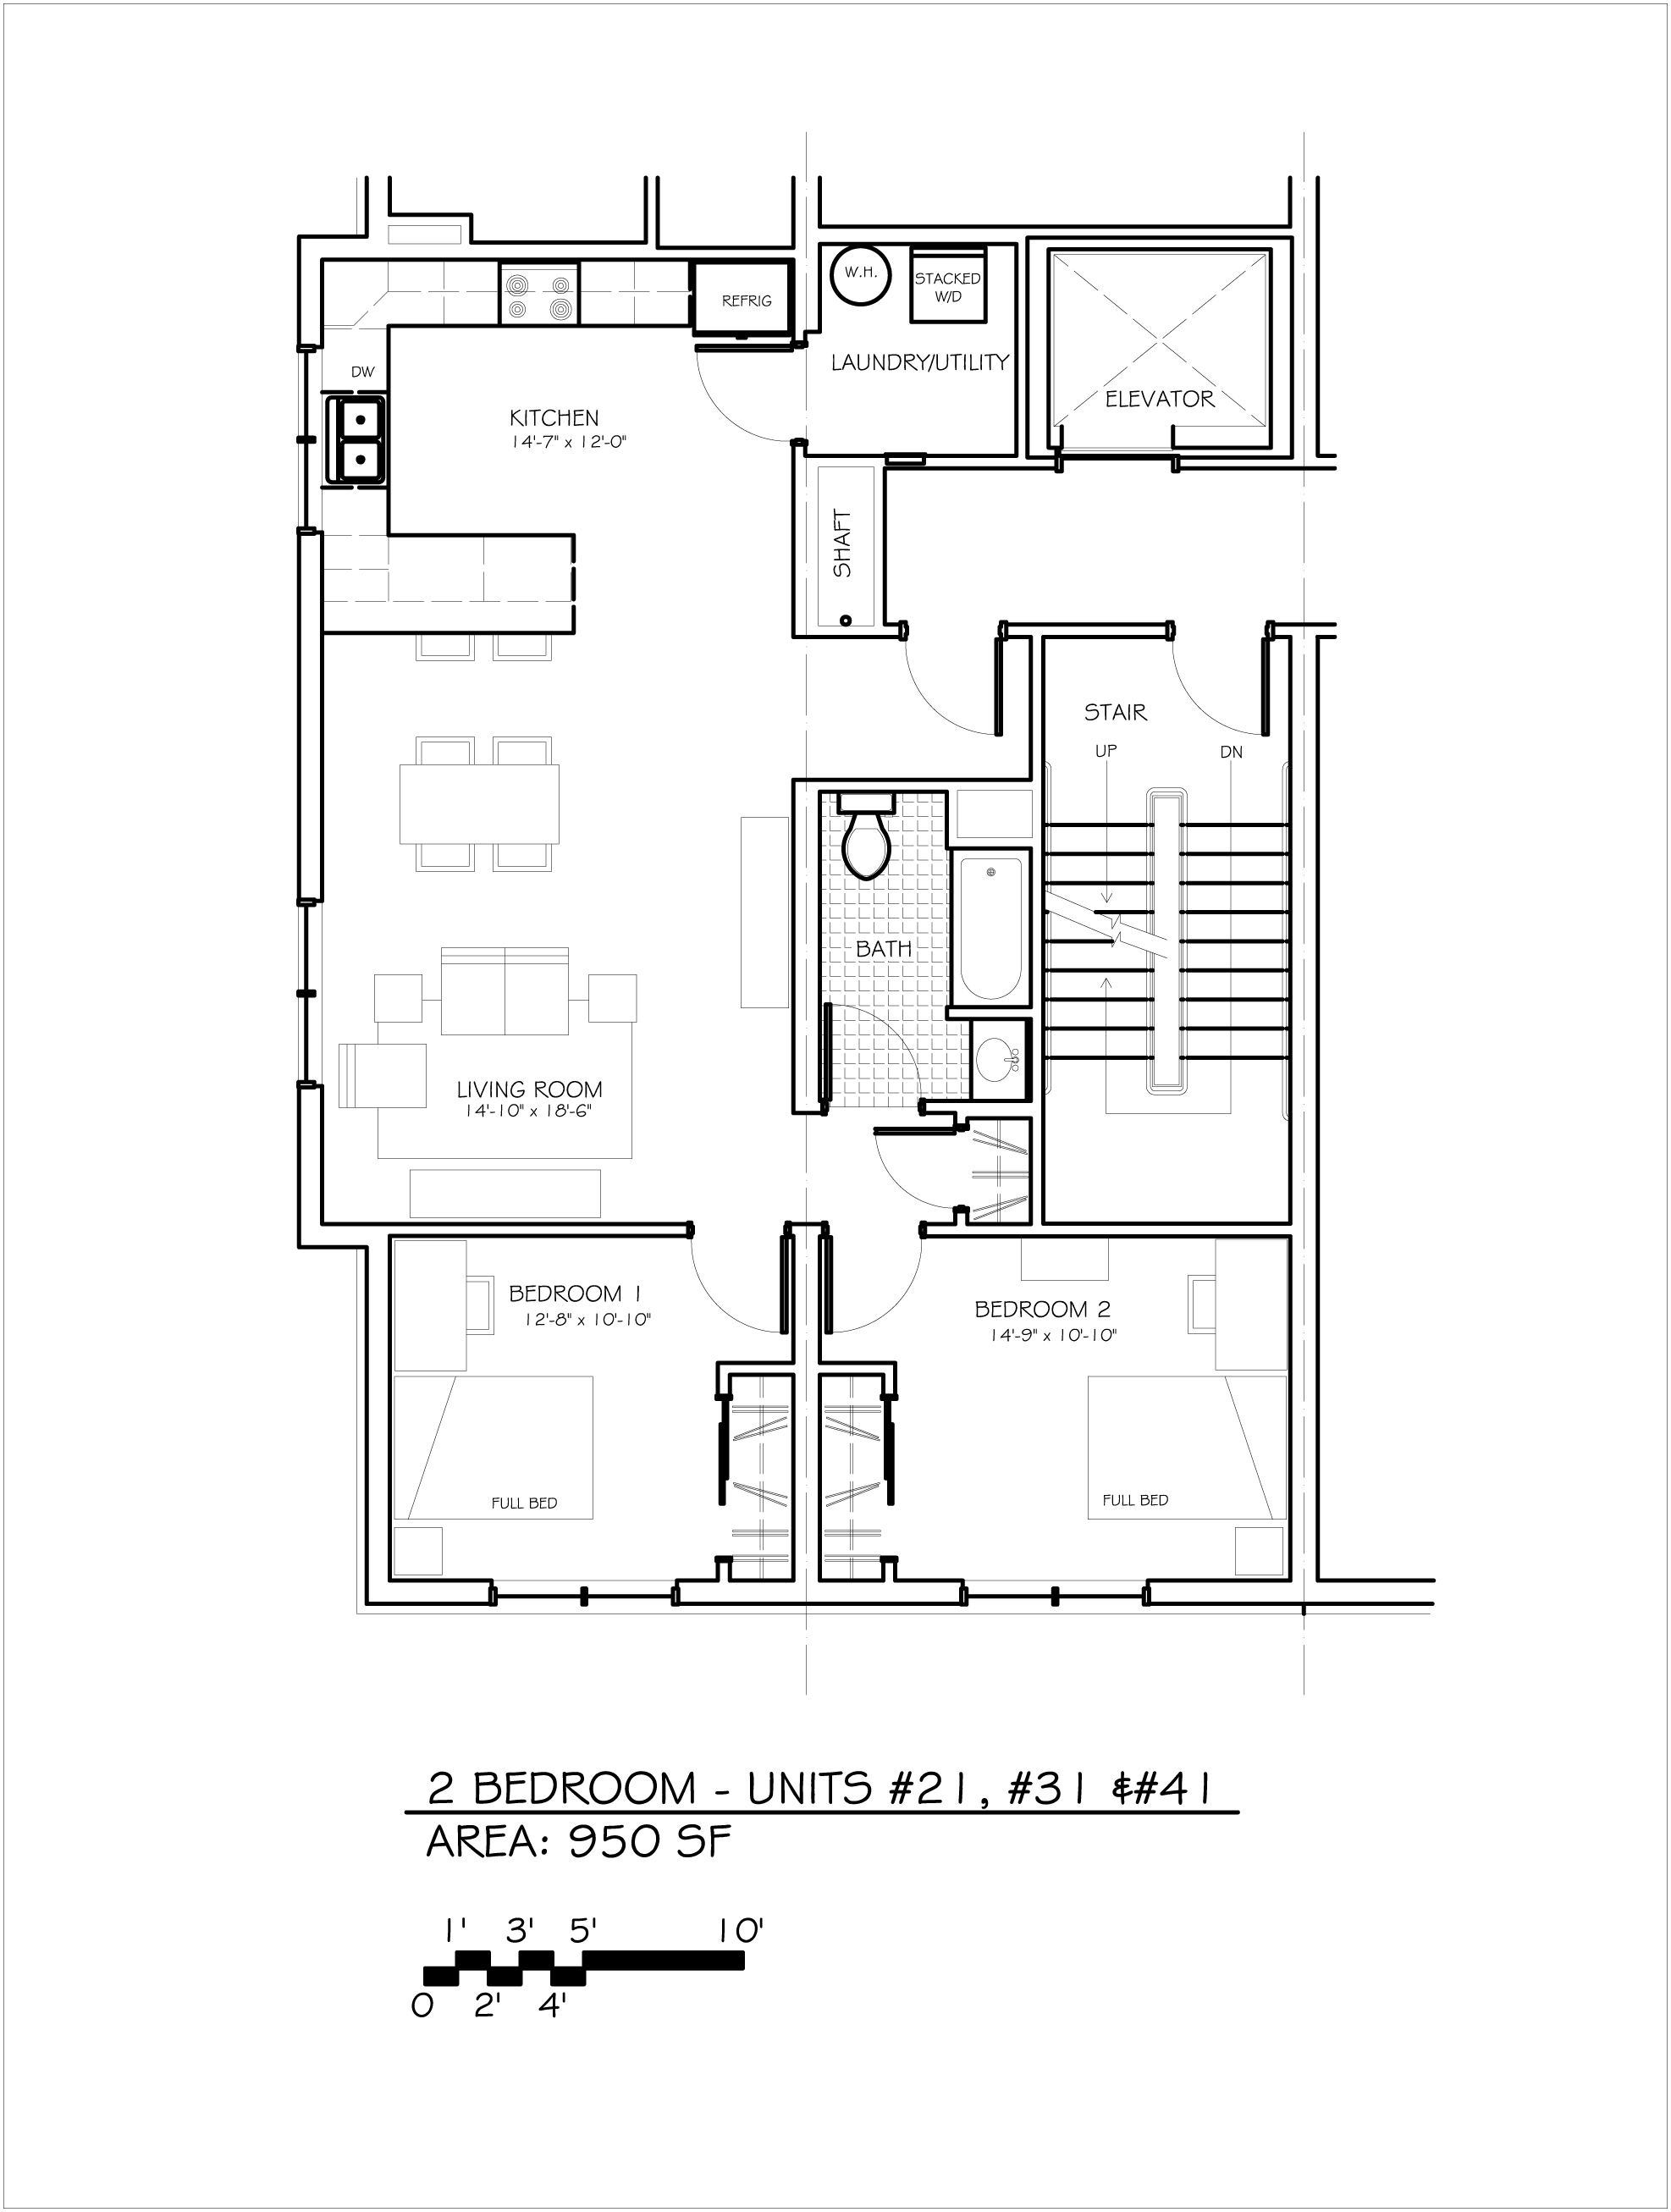 Link To Floor Plan Of Apt 21